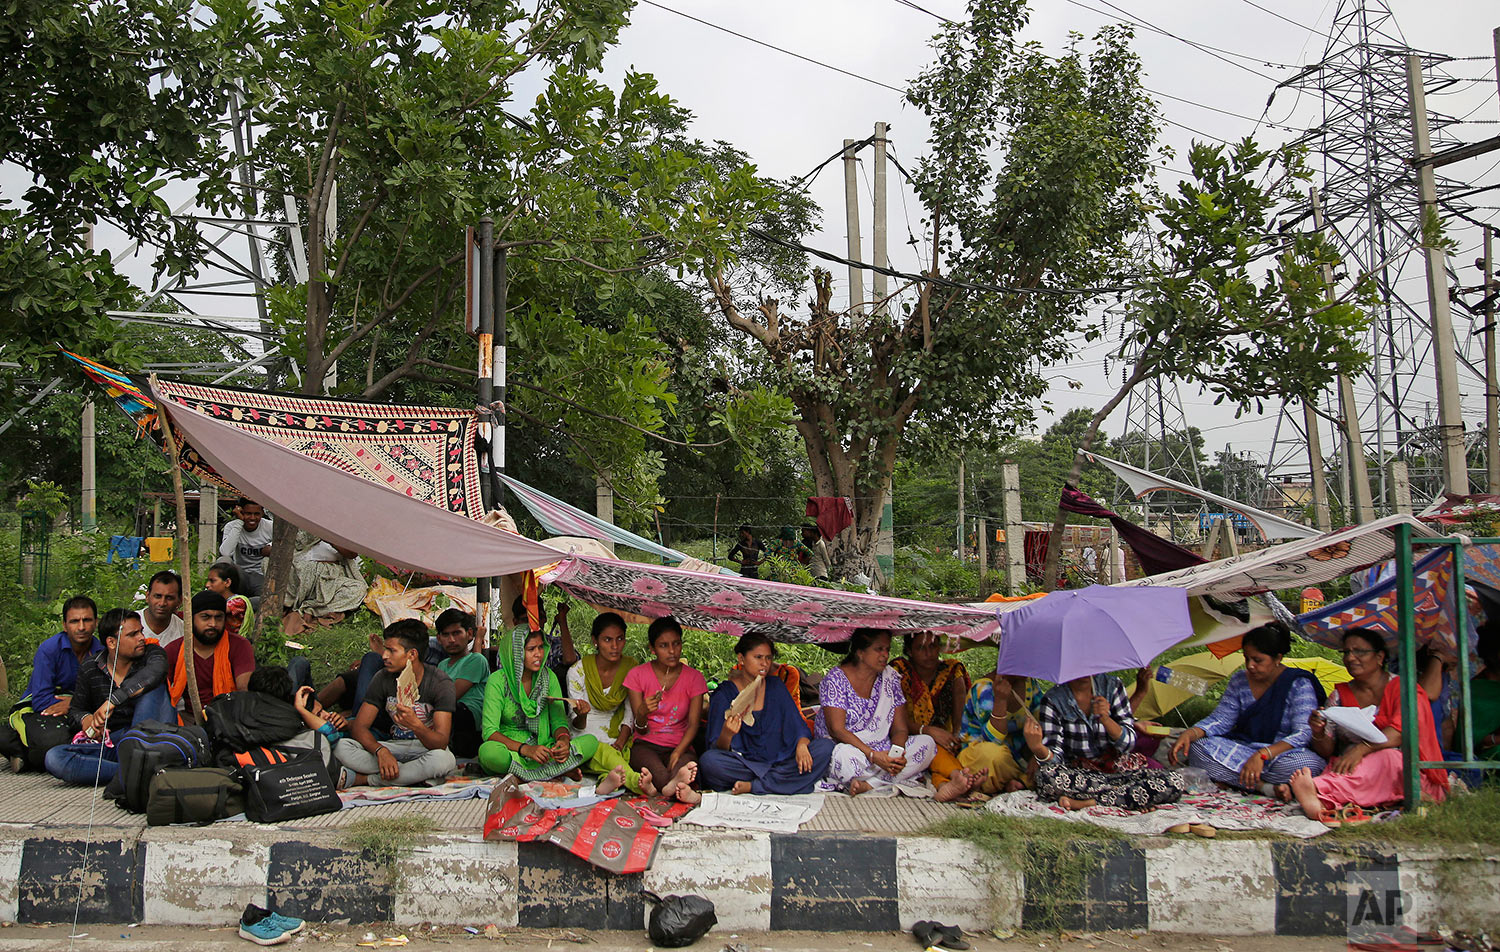 Supporters of the Dera Sacha Sauda sect squat on the roadside leading to an Indian court in Panchkula, India, Thursday, Aug. 24, 2017. (AP Photo/Altaf Qadri)